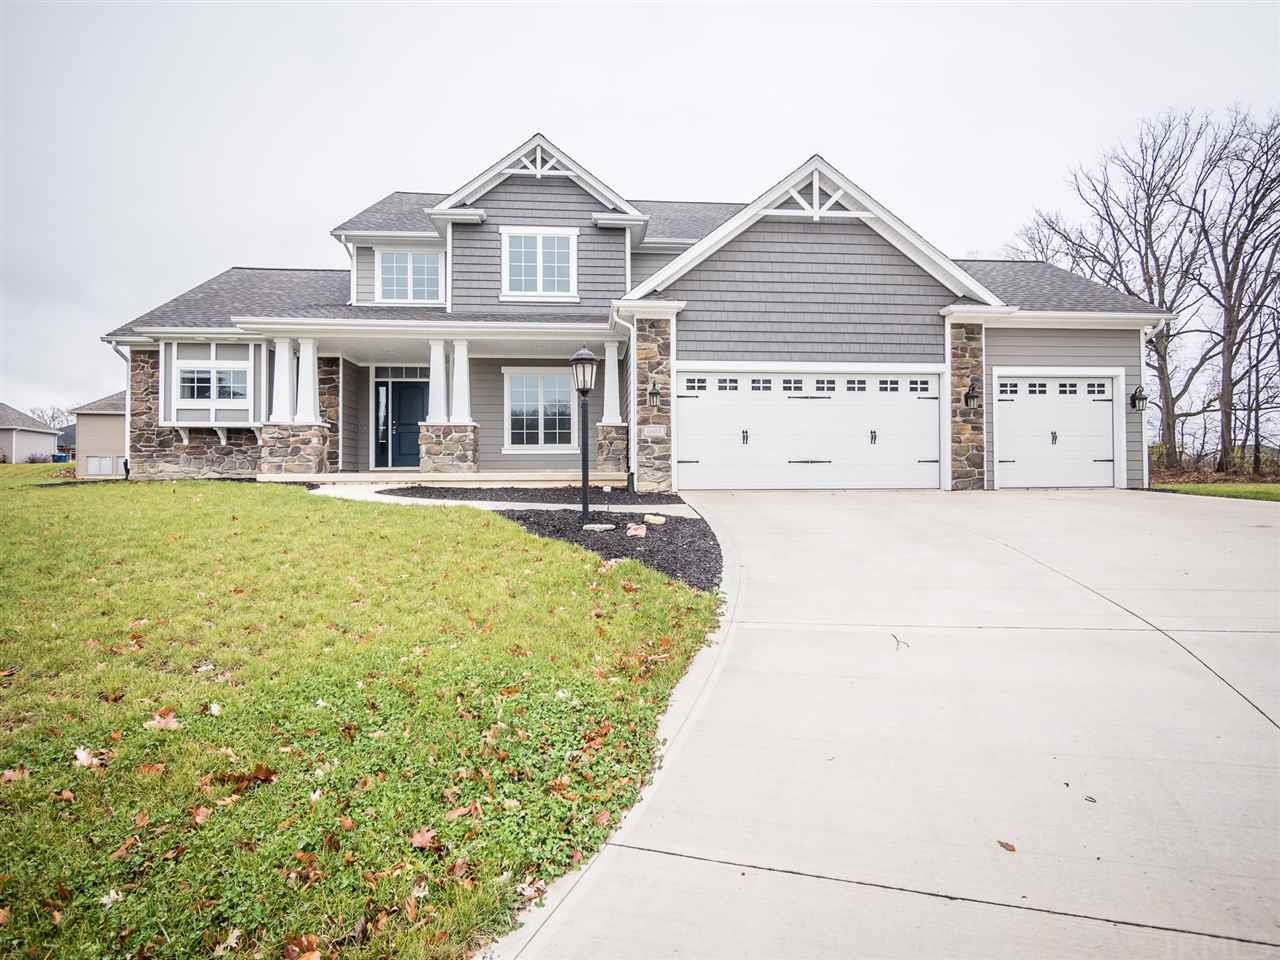 11403 Red Fern, Fort Wayne, IN 46845